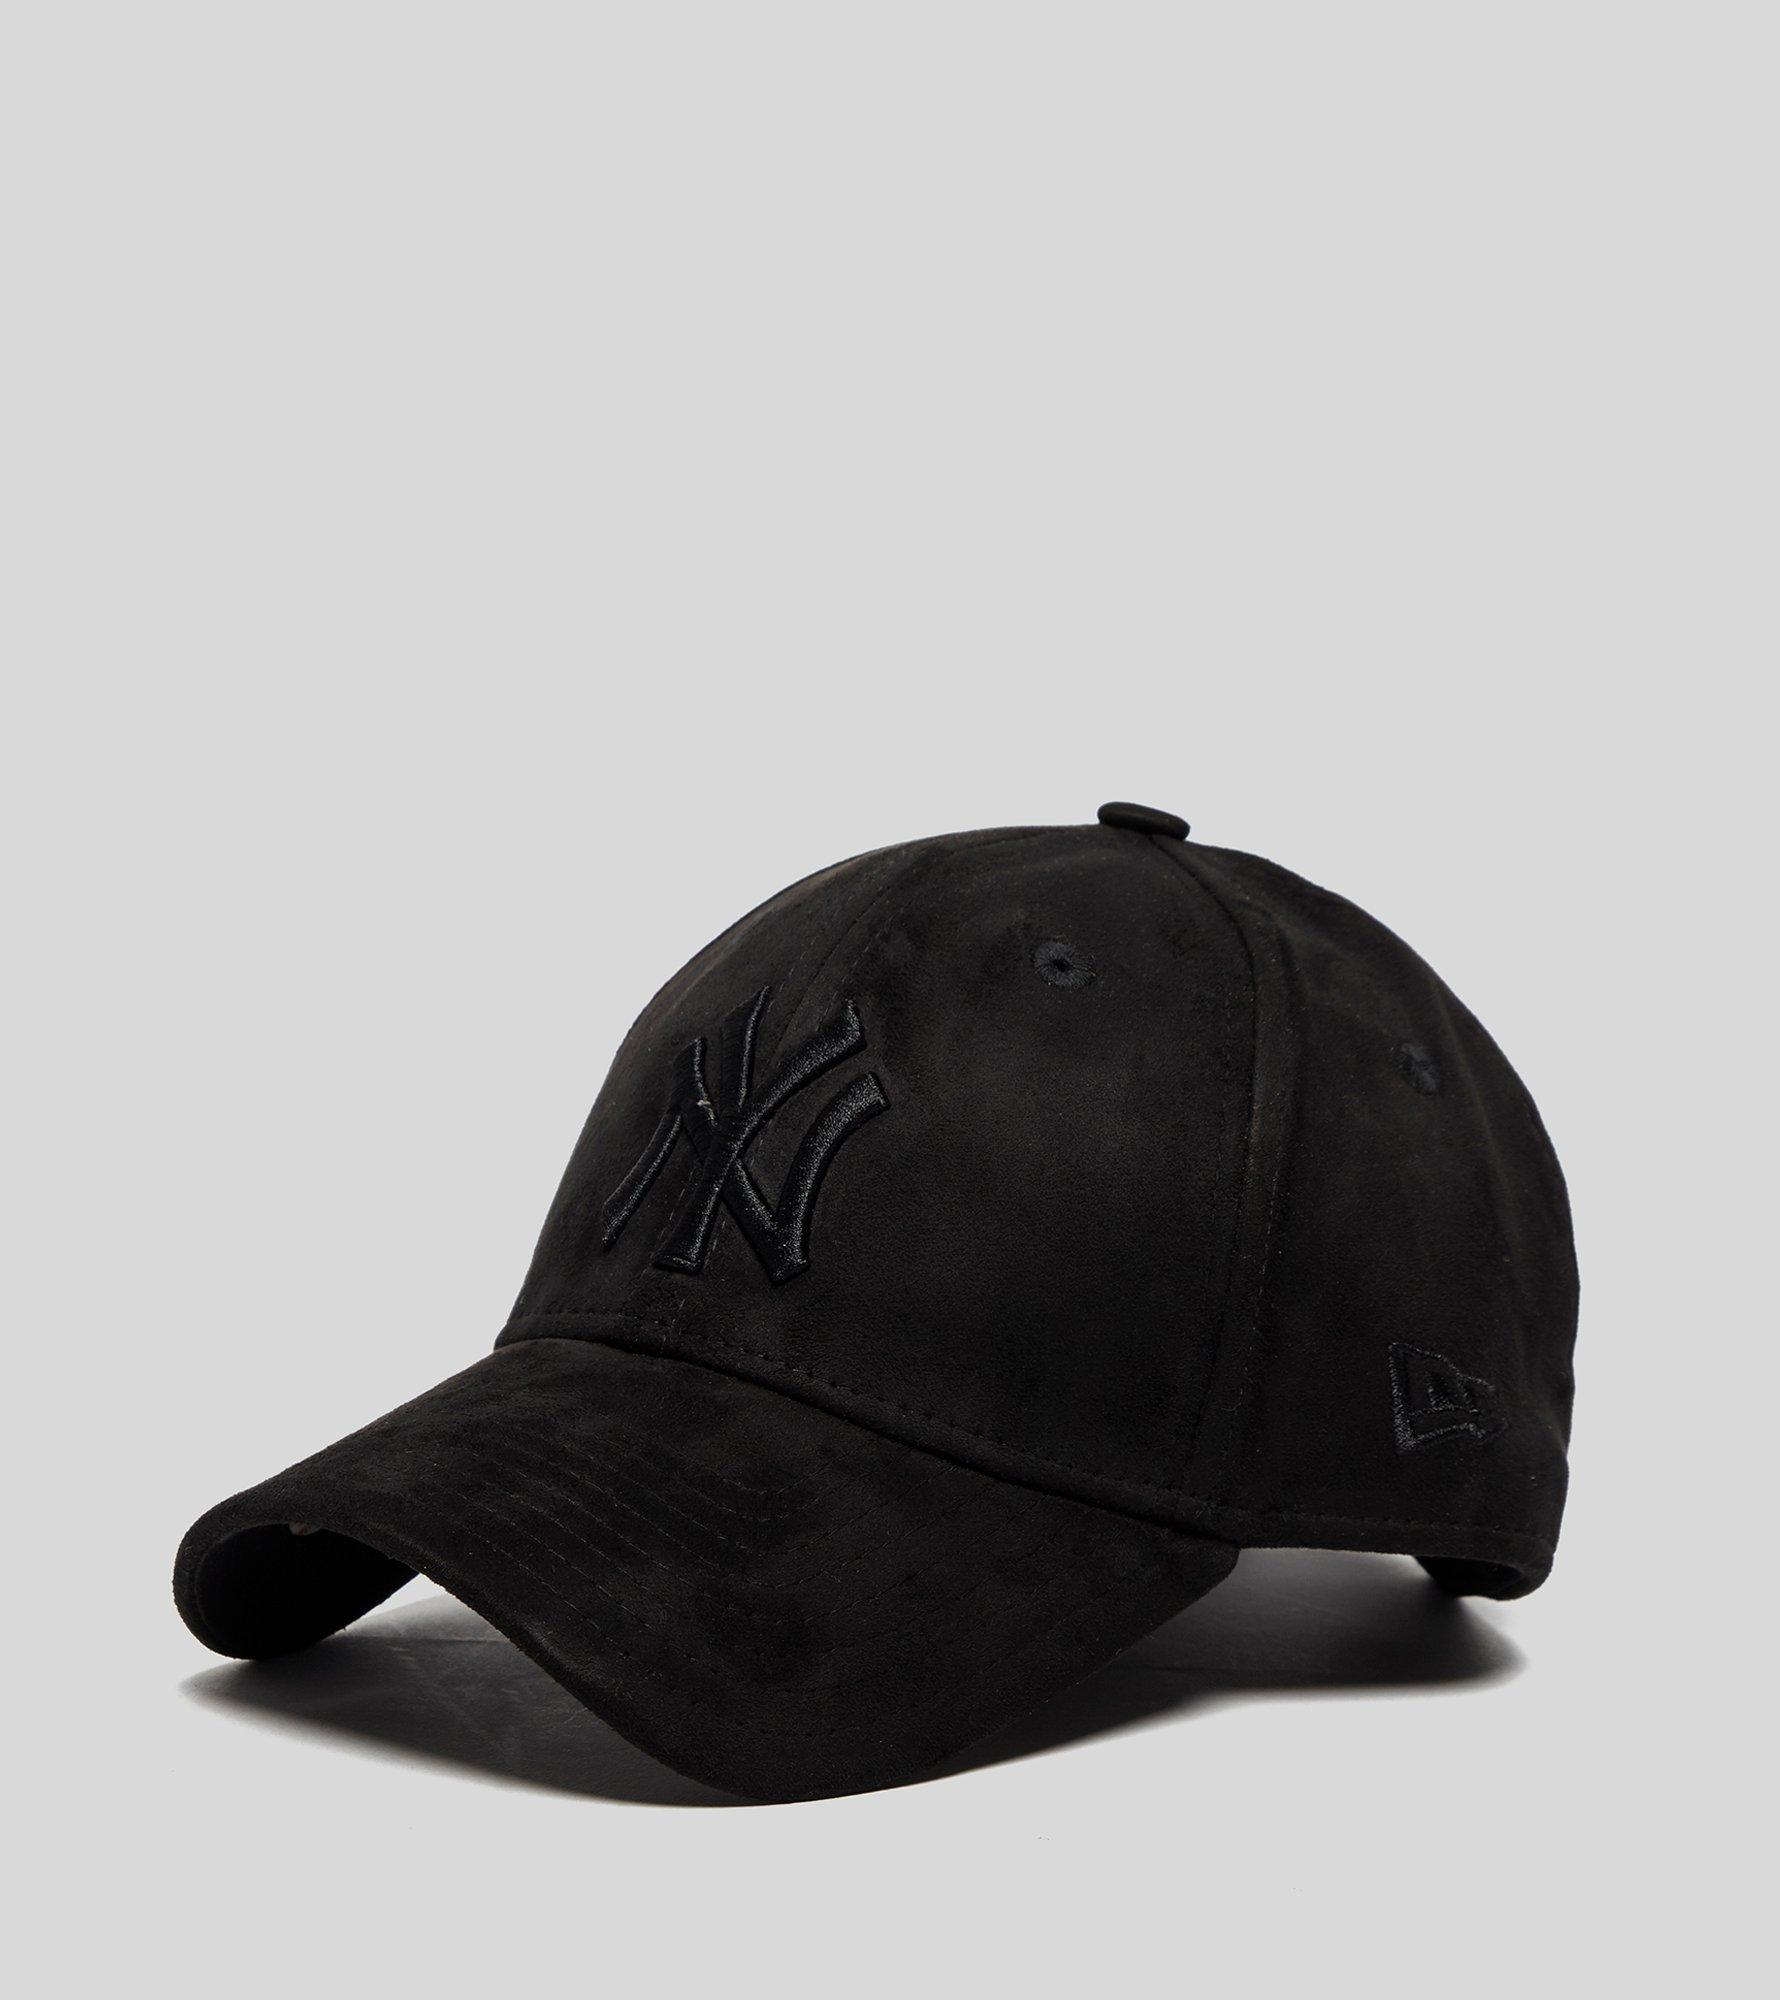 2c280576 ... uk lyst ktz 9forty new york yankees suede cap in black for men f4504  438d6